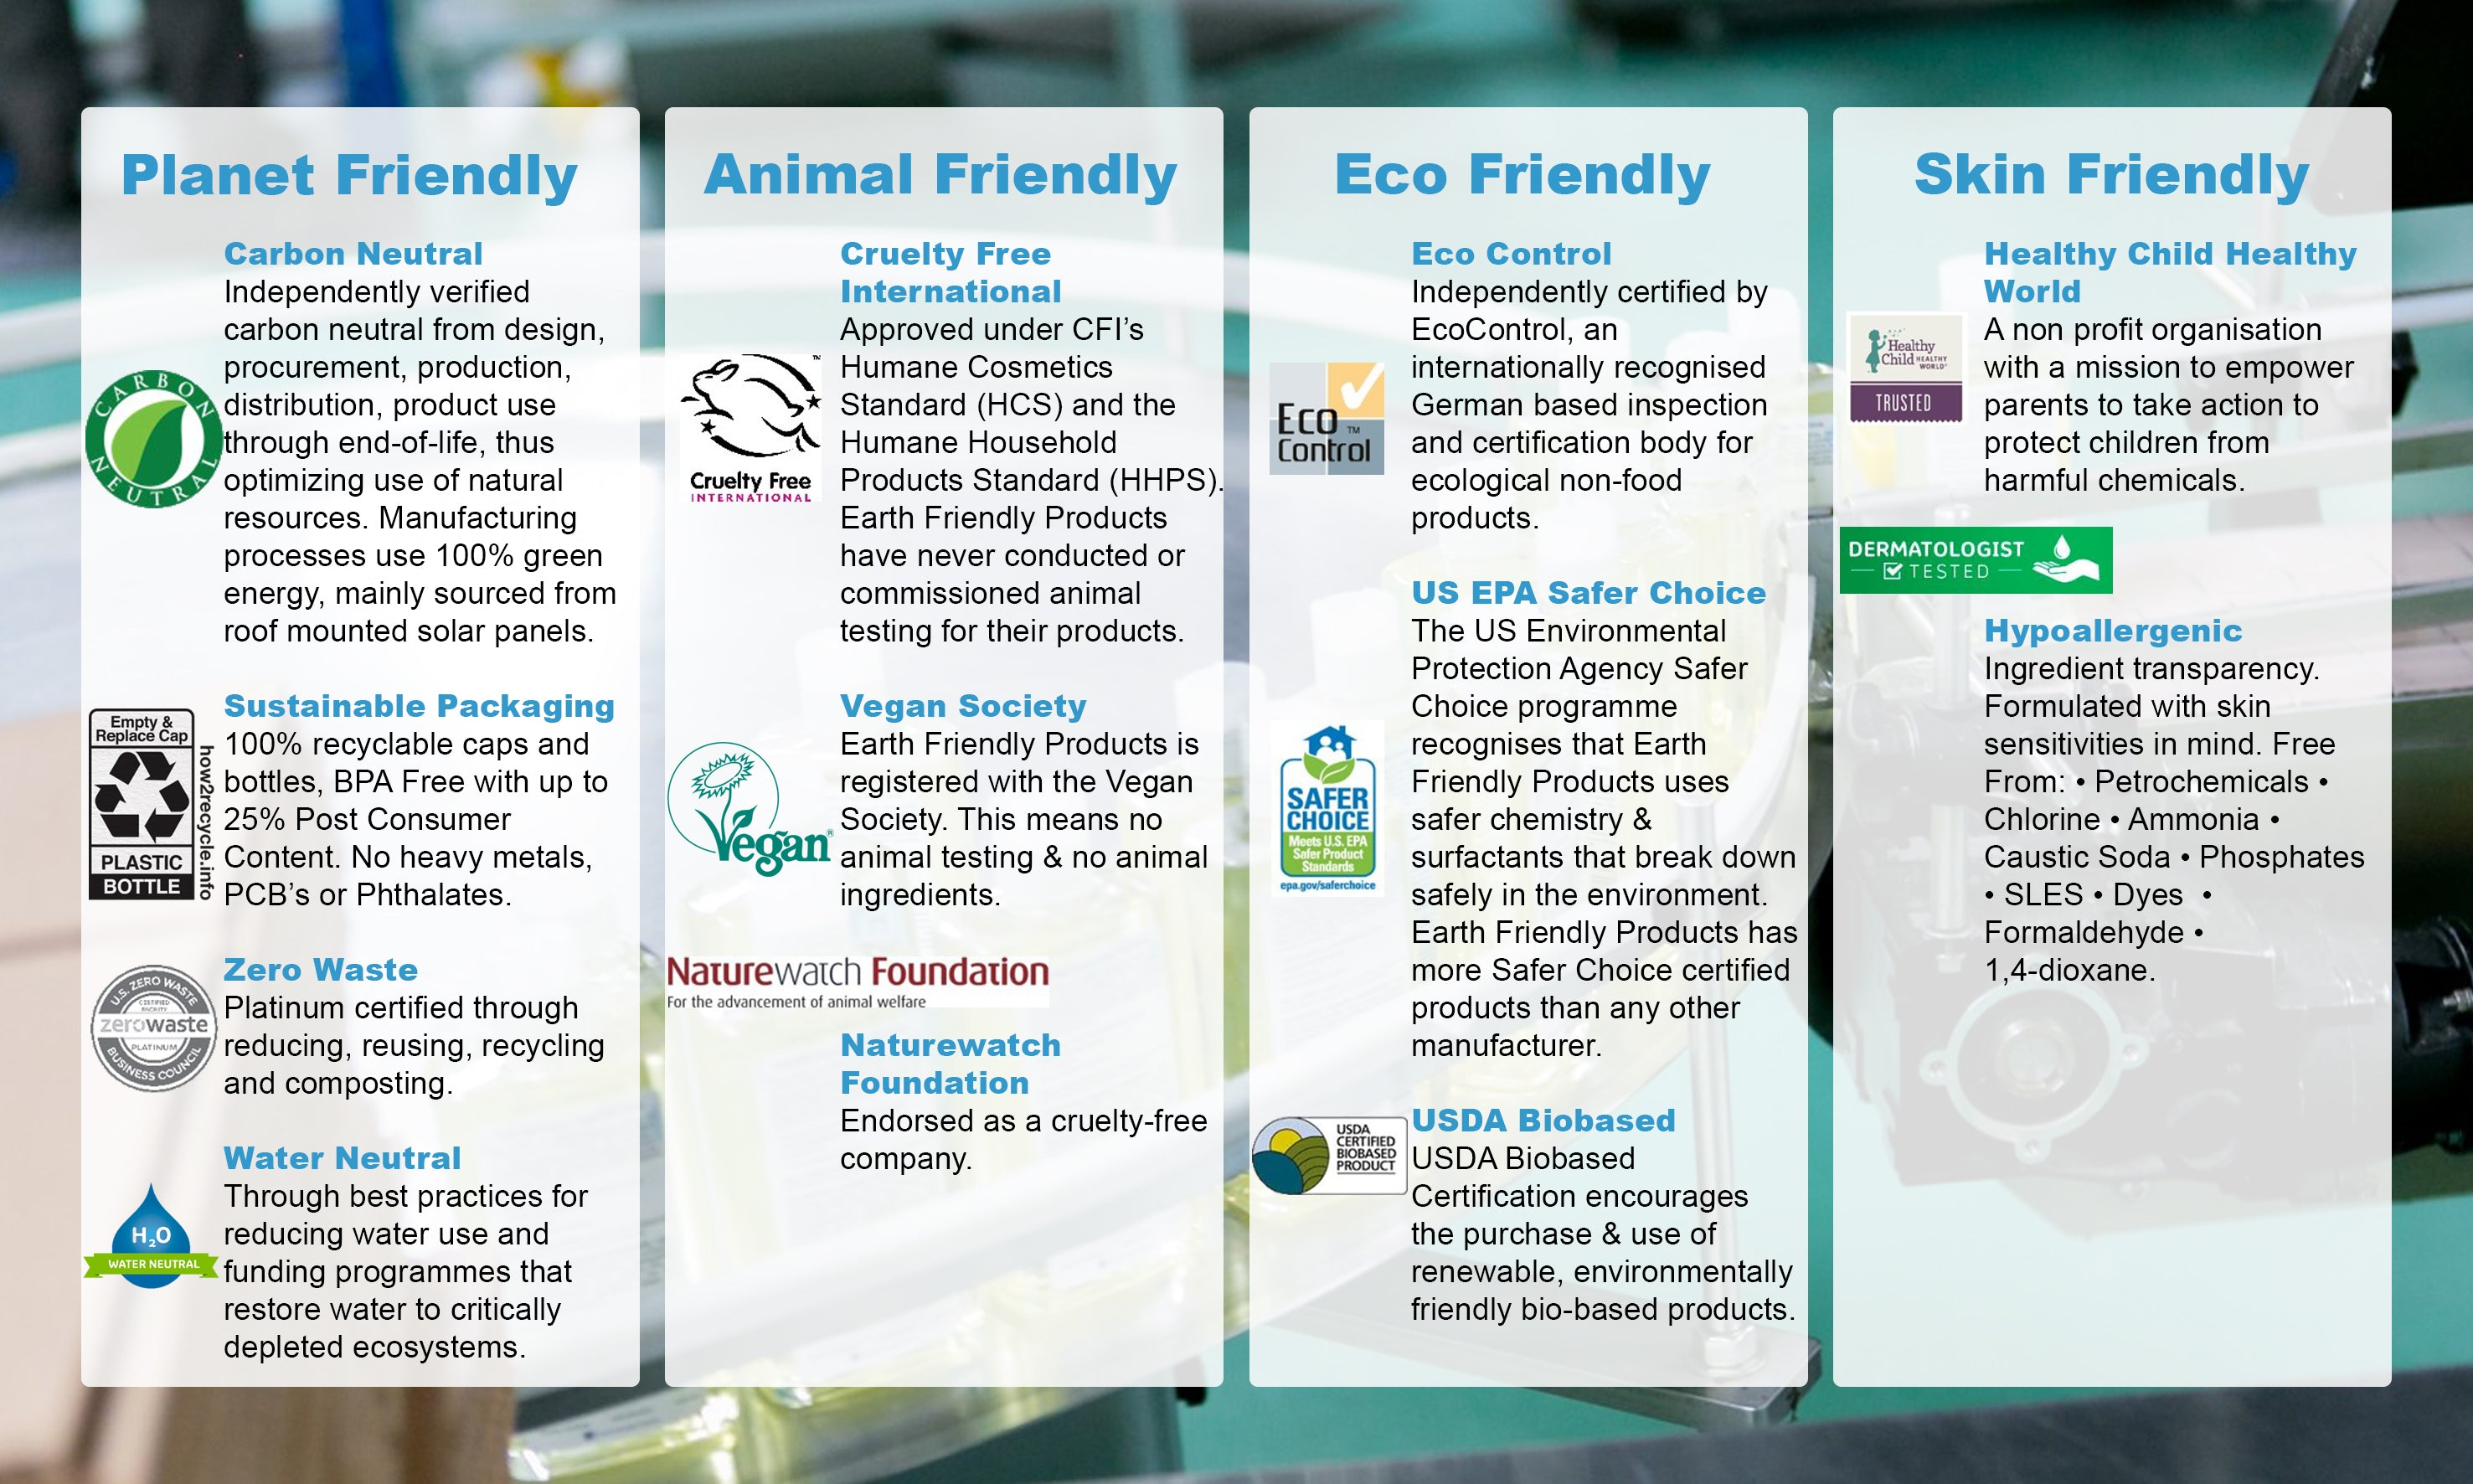 Earth Friendly Products ECOS Certification list